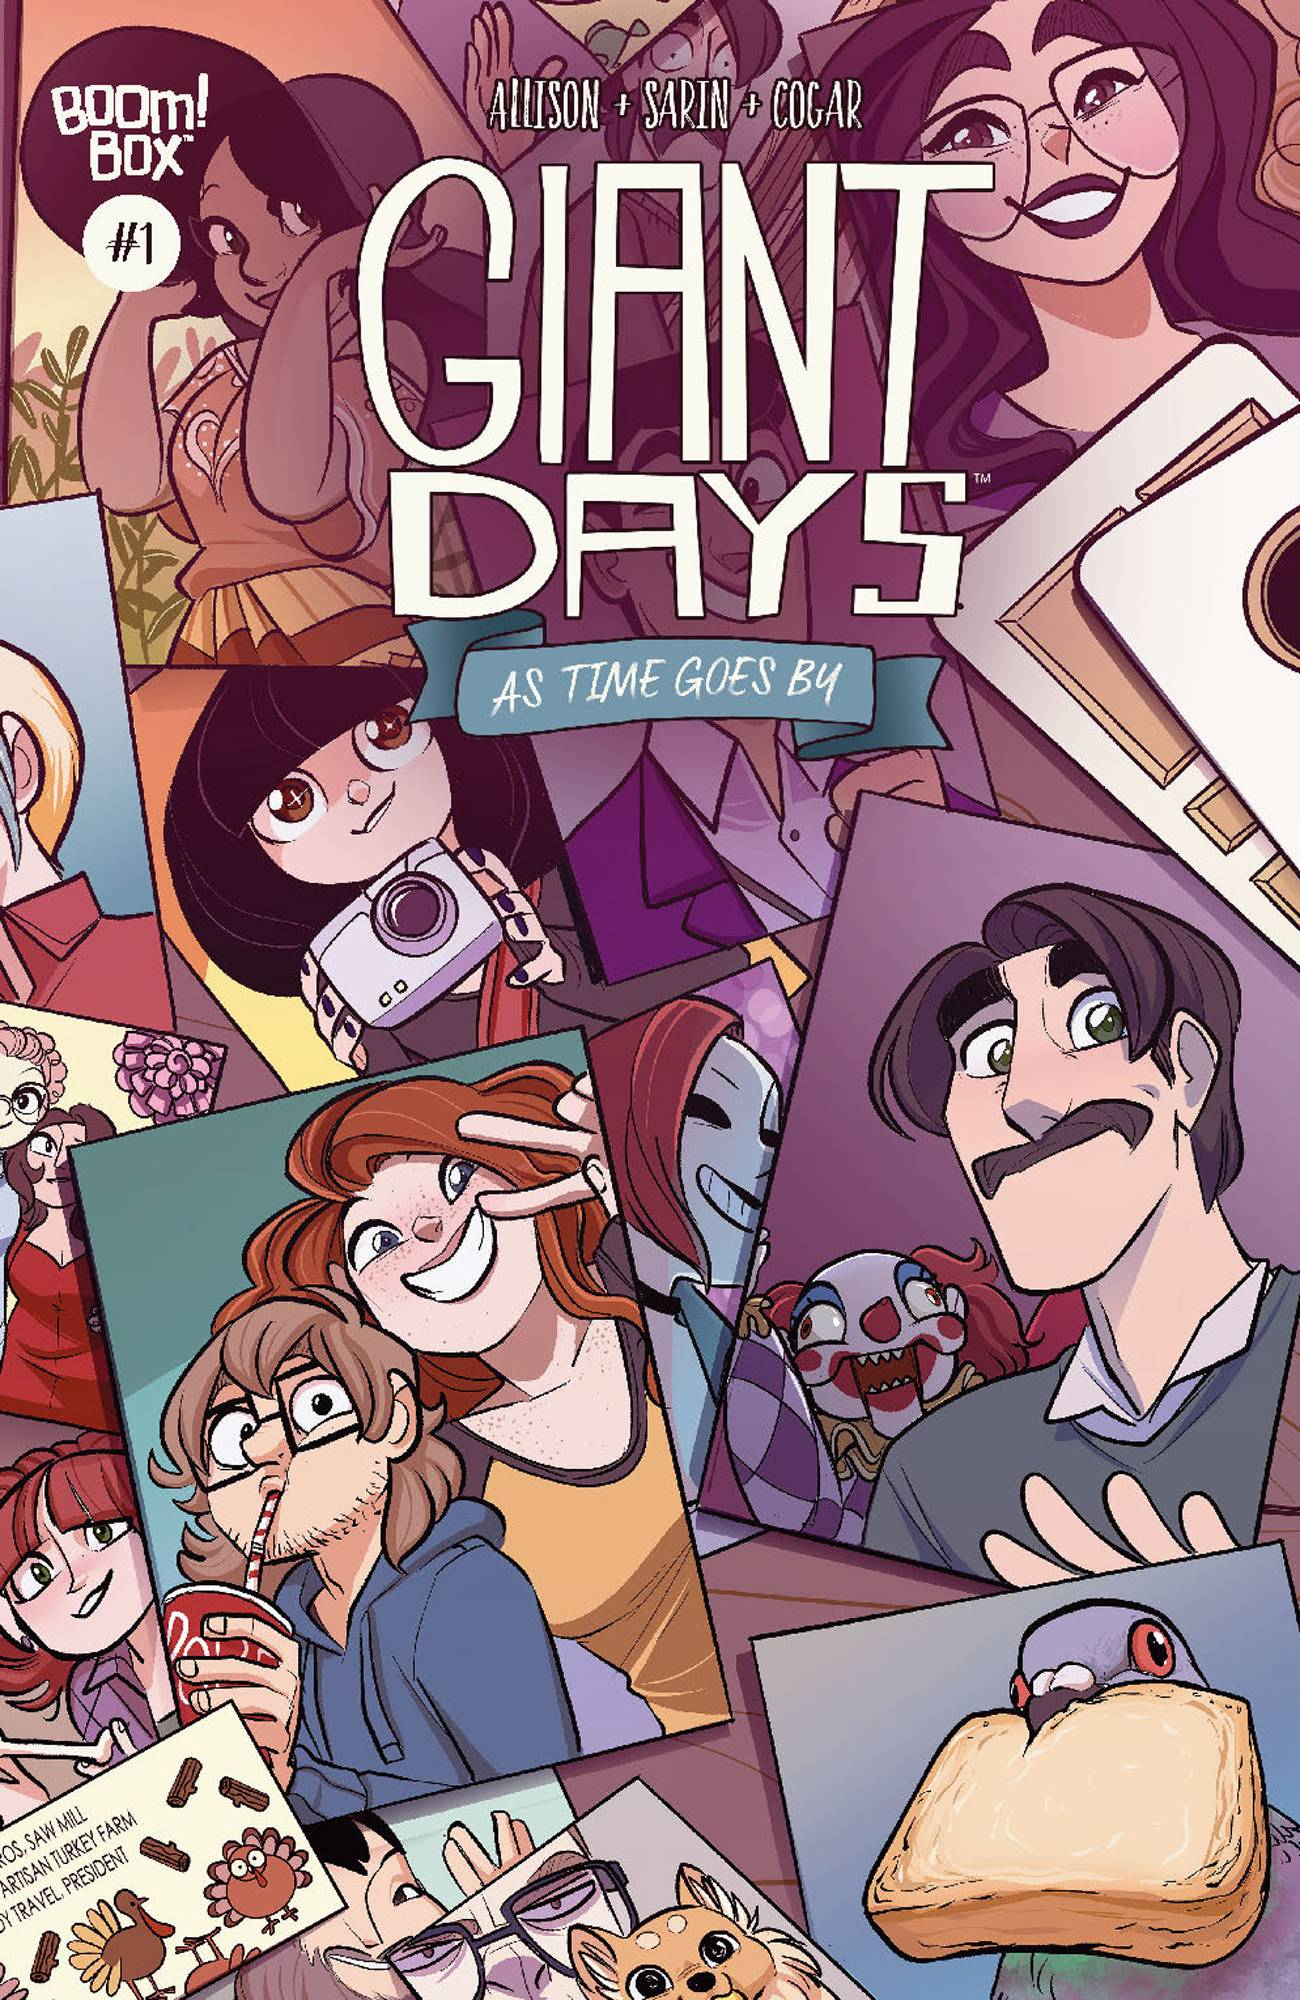 GIANT DAYS AS TIME GOES BY #1 CVR B SARIN